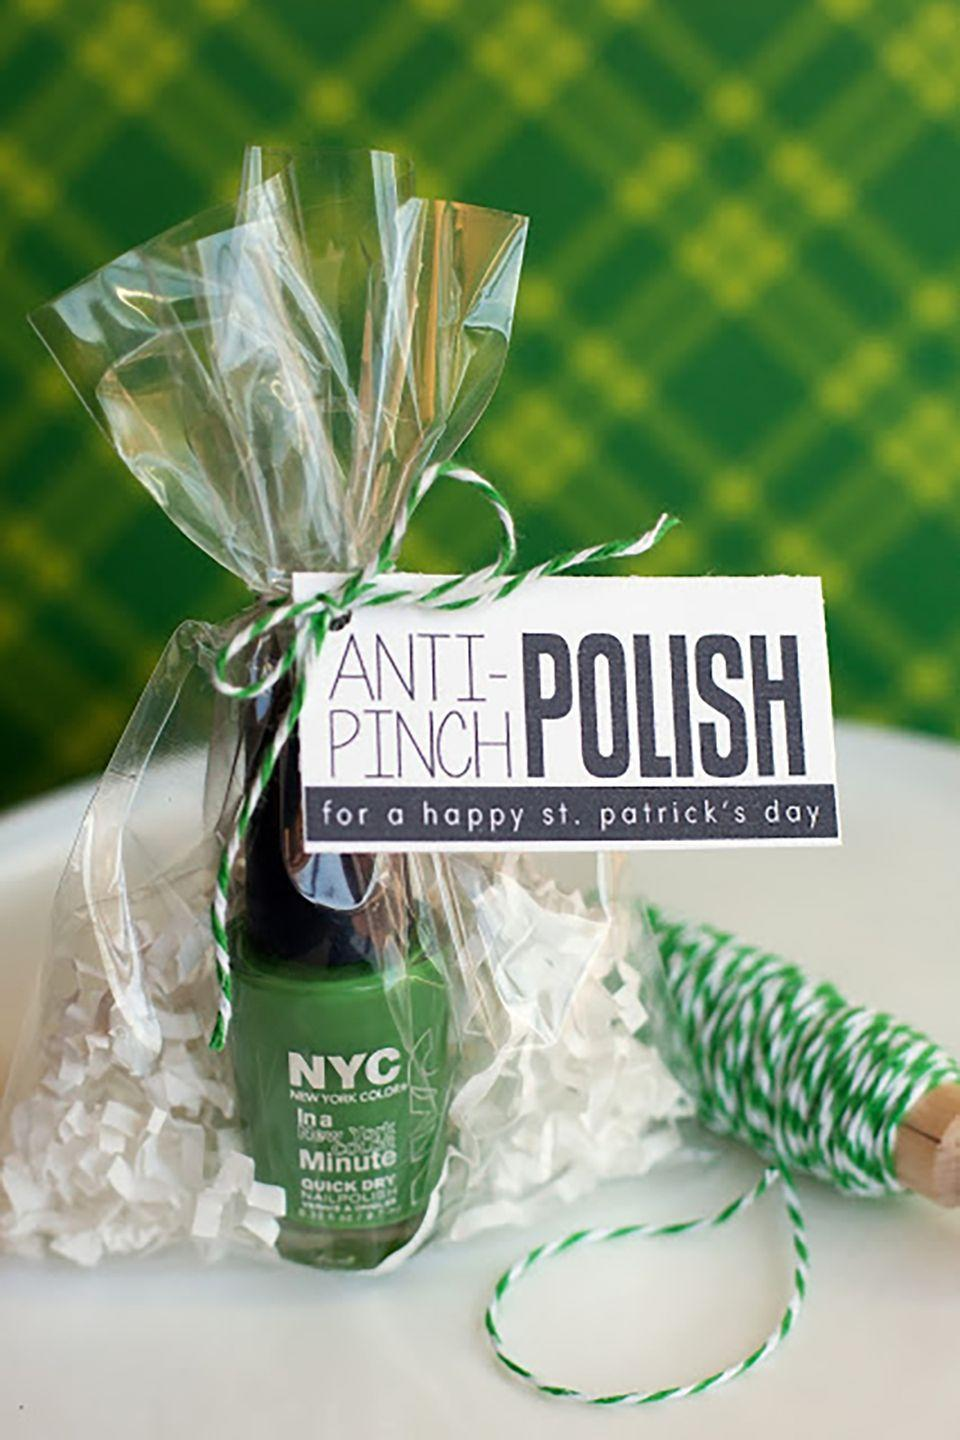 """<p>These are the perfect party favors for your St. Patrick's Day party.</p><p><strong>Get the tutorial at <a href=""""http://eighteen25.com/2013/02/anti-pinch-polish/"""" rel=""""nofollow noopener"""" target=""""_blank"""" data-ylk=""""slk:Eighteen25"""" class=""""link rapid-noclick-resp"""">Eighteen25</a>. </strong></p>"""